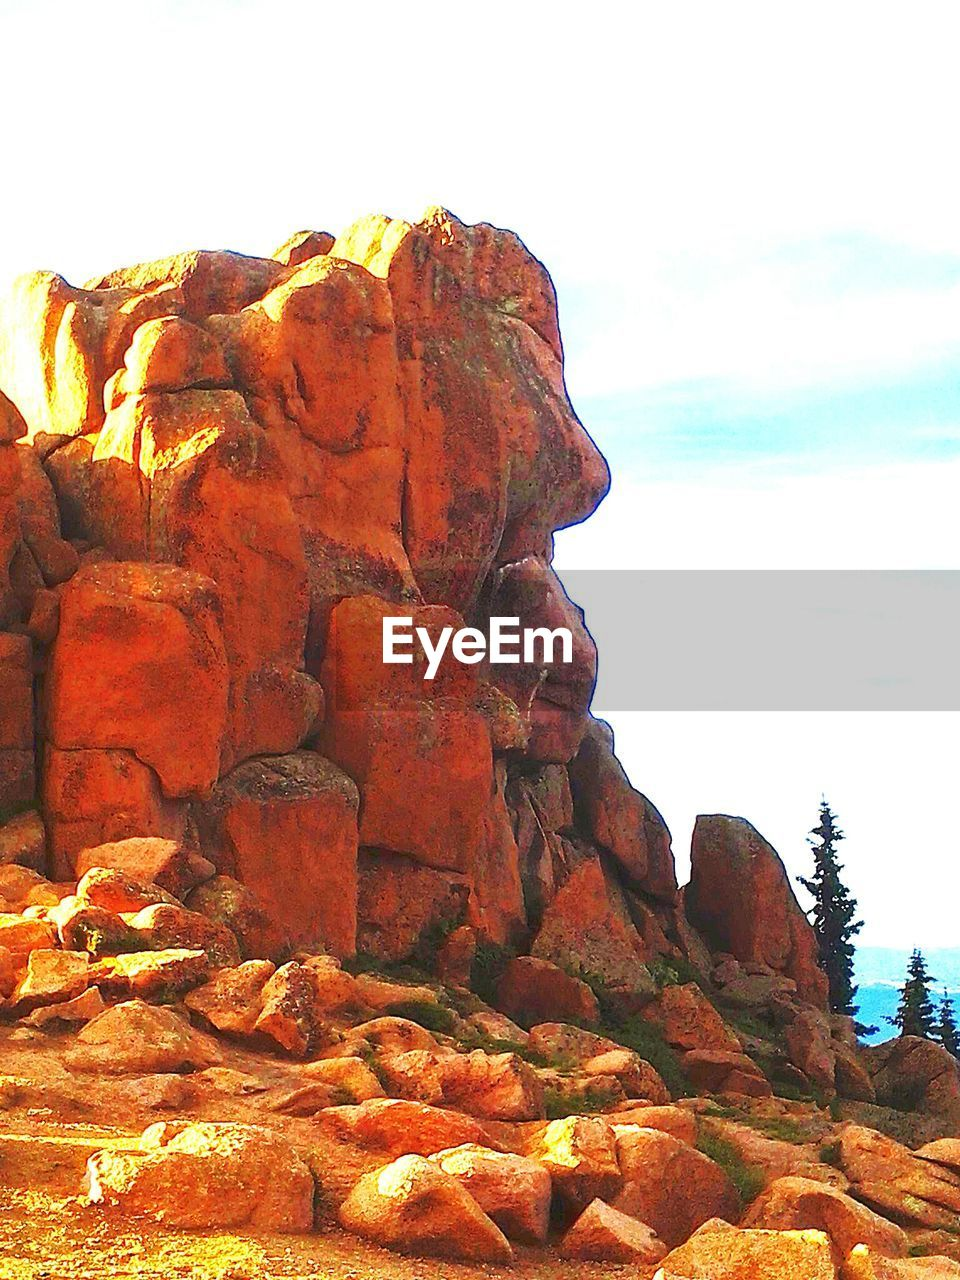 rock formation, rock - object, geology, nature, beauty in nature, physical geography, tranquility, outdoors, tranquil scene, sky, day, landscape, no people, travel destinations, scenics